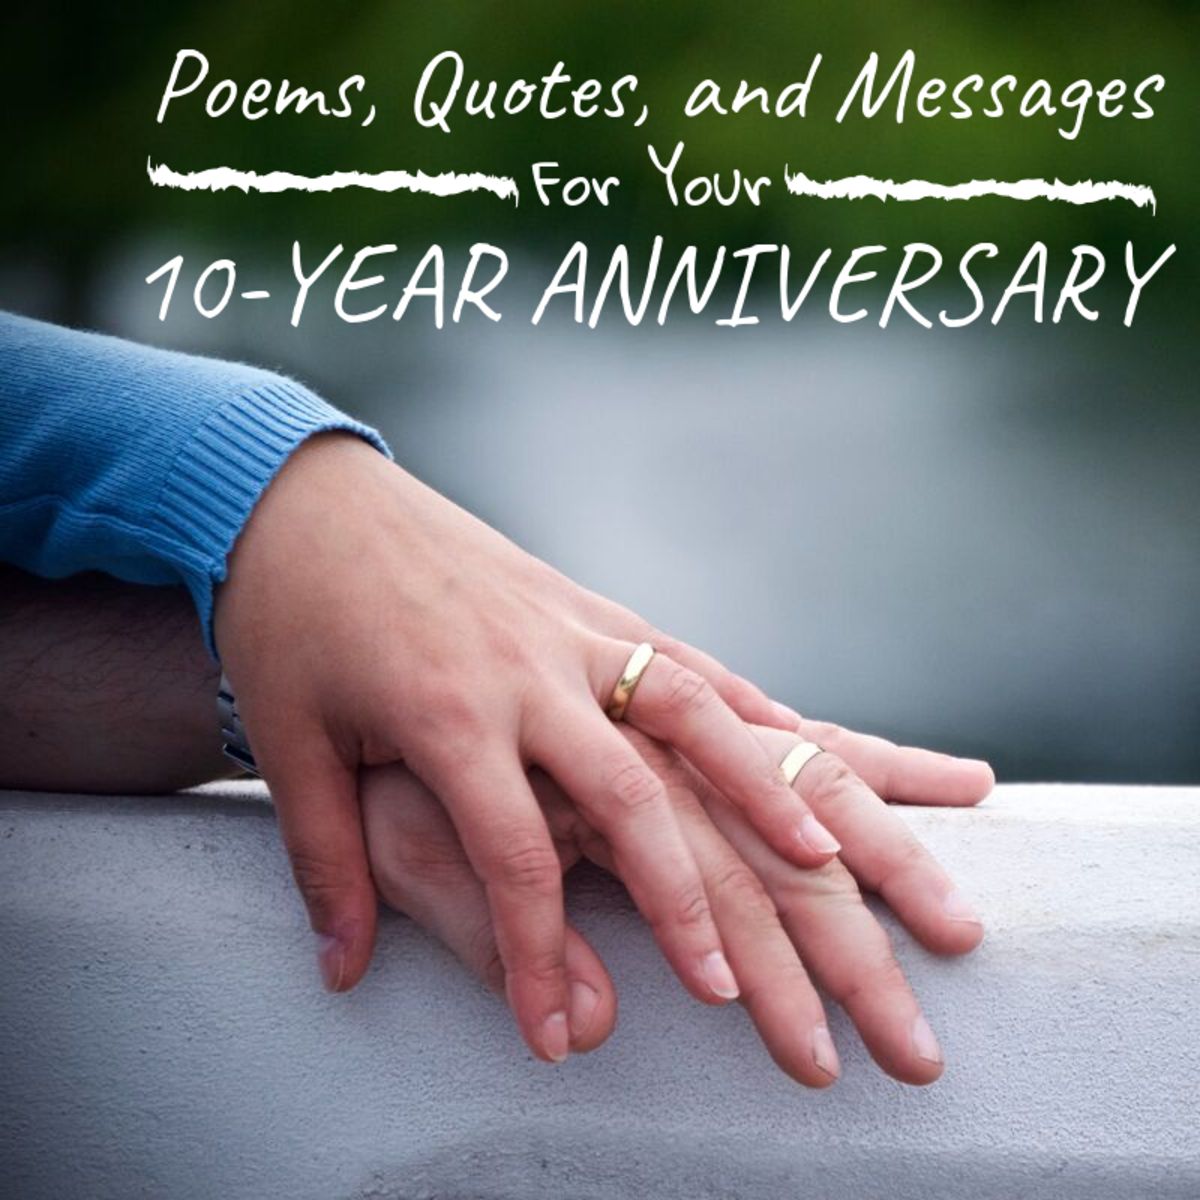 10 years of marriage is quite the accomplishment! Let your spouse know how excited you are for the next 10 to come!